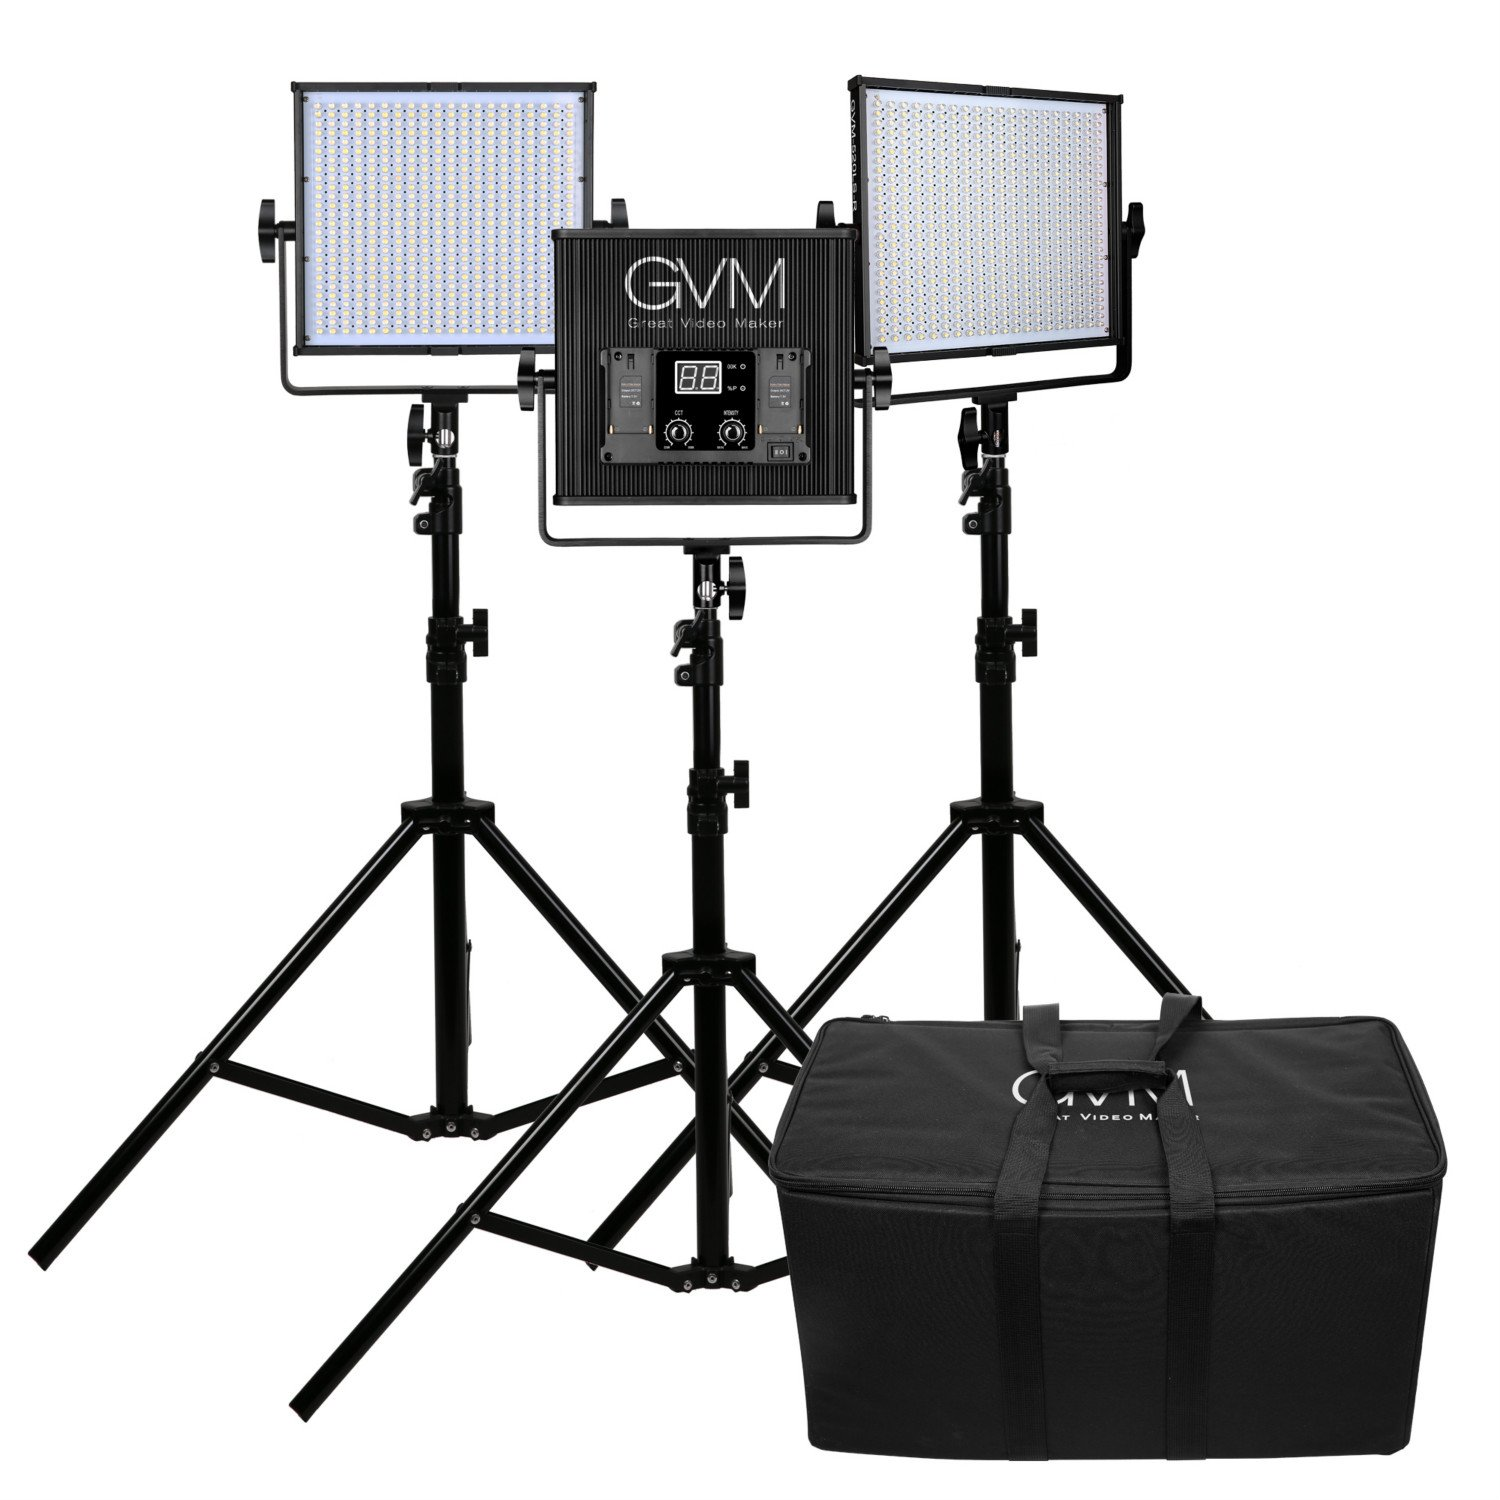 GVM LED Video Light Kit 520LS CRI97 Plus & TLCI 97+ Plus 18500lux@20 inch Variable color temperature 3200-5600K with Digital Display for Video Making photography lighting and Location Shooting, Studio